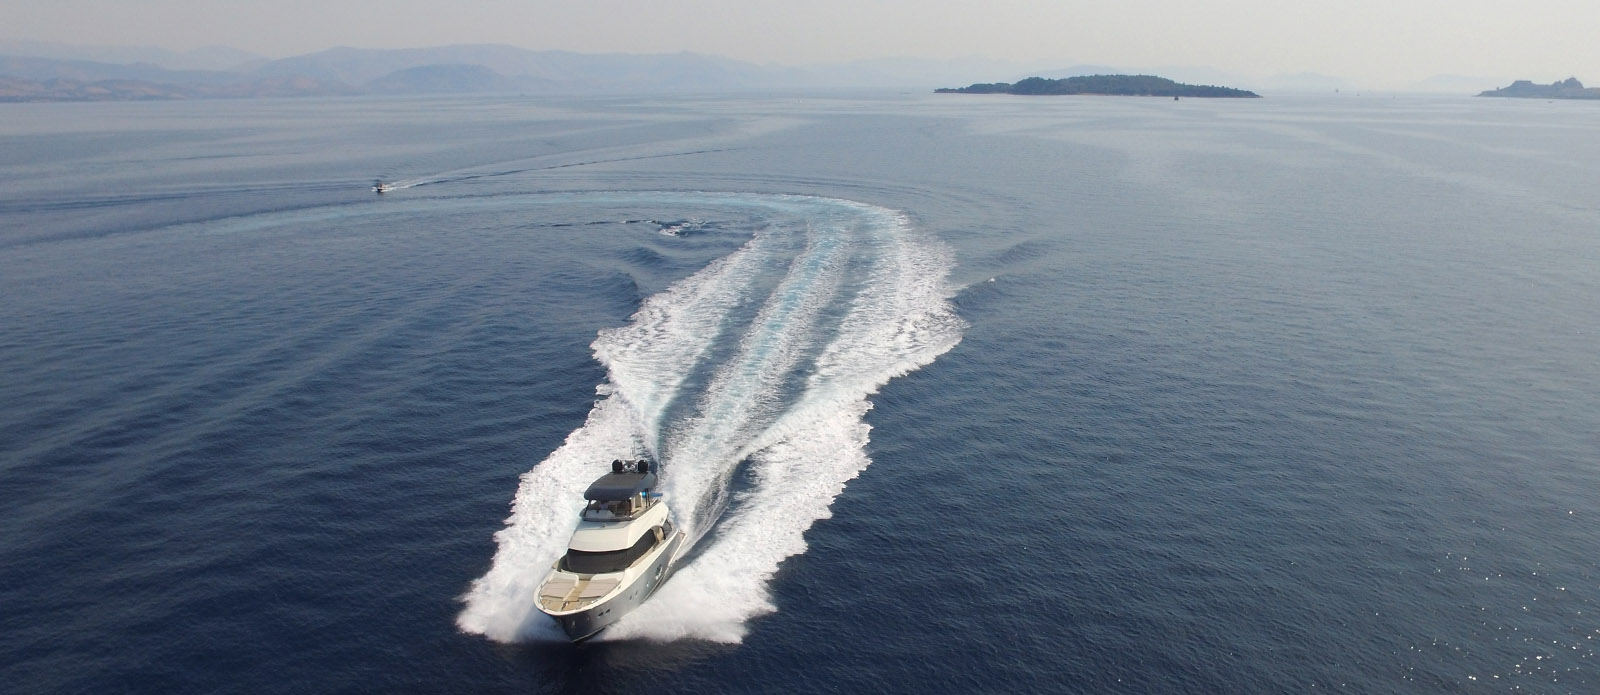 Monte-Carlo-Yachts-65-It's-Magic-Drone